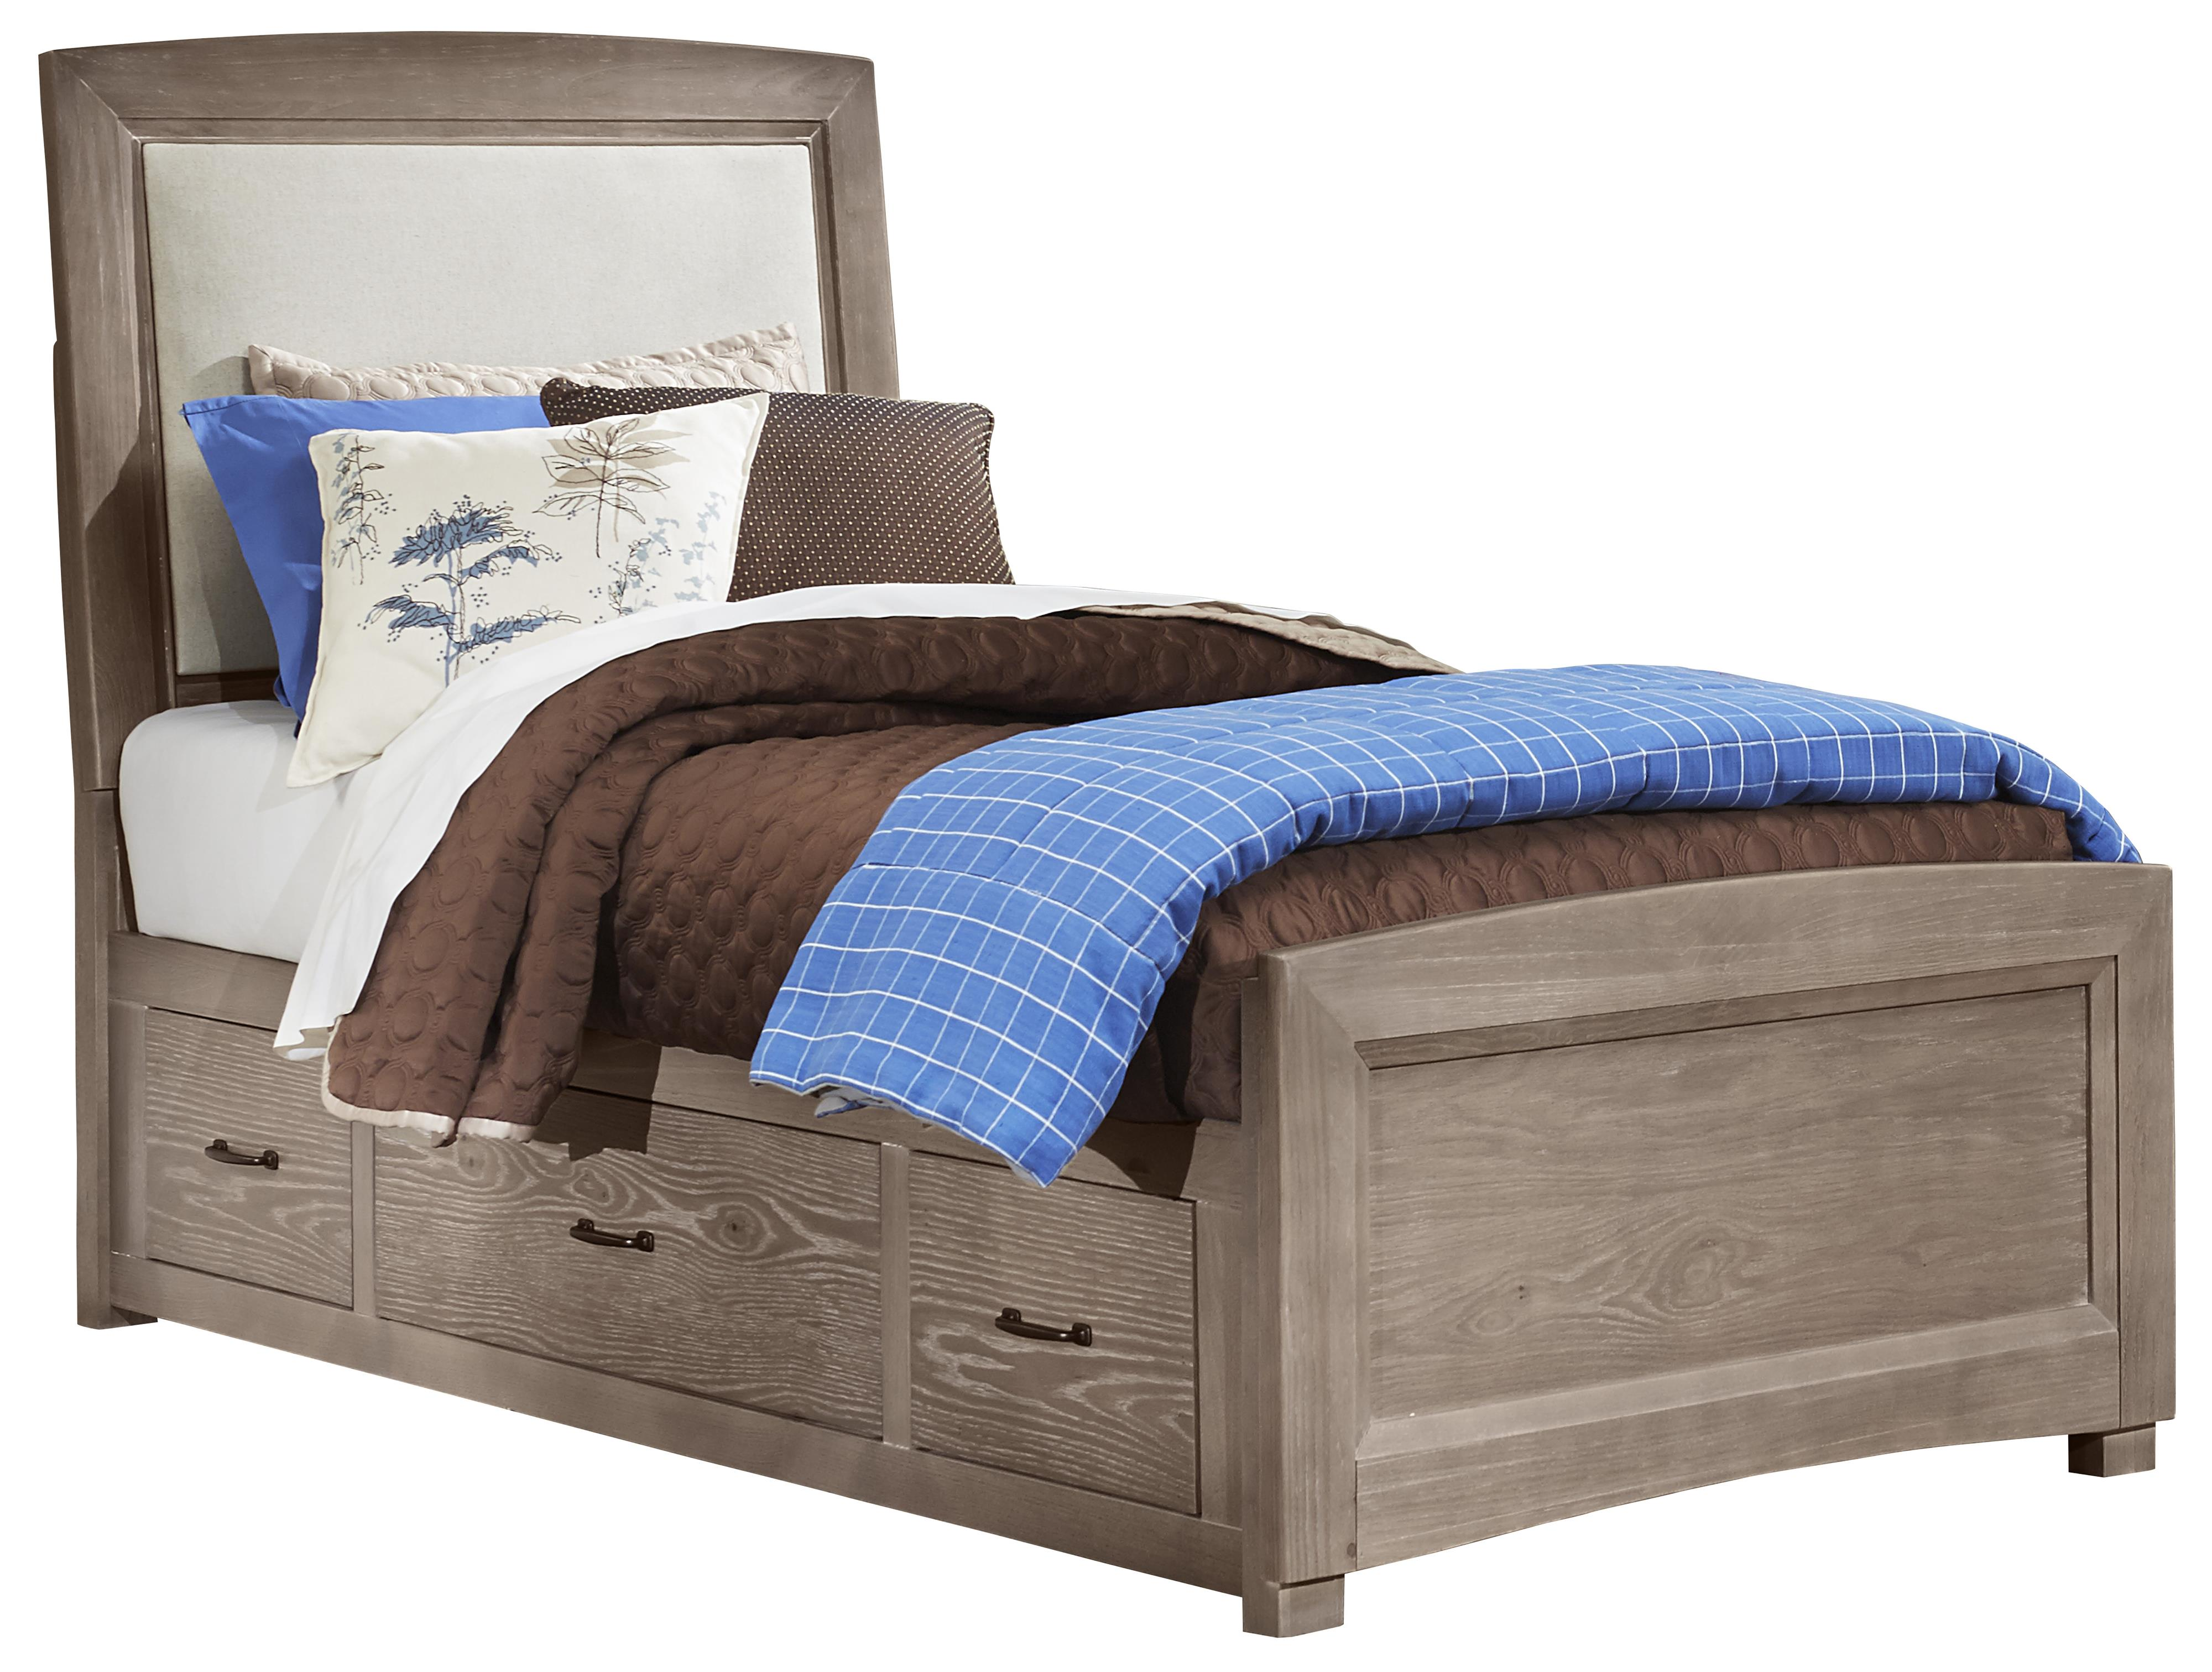 Vaughan Bassett Transitions Twin Uph. Bed, Base Cloth Linen with Storage - Item Number: BB61-339+833+076B+076C+333T